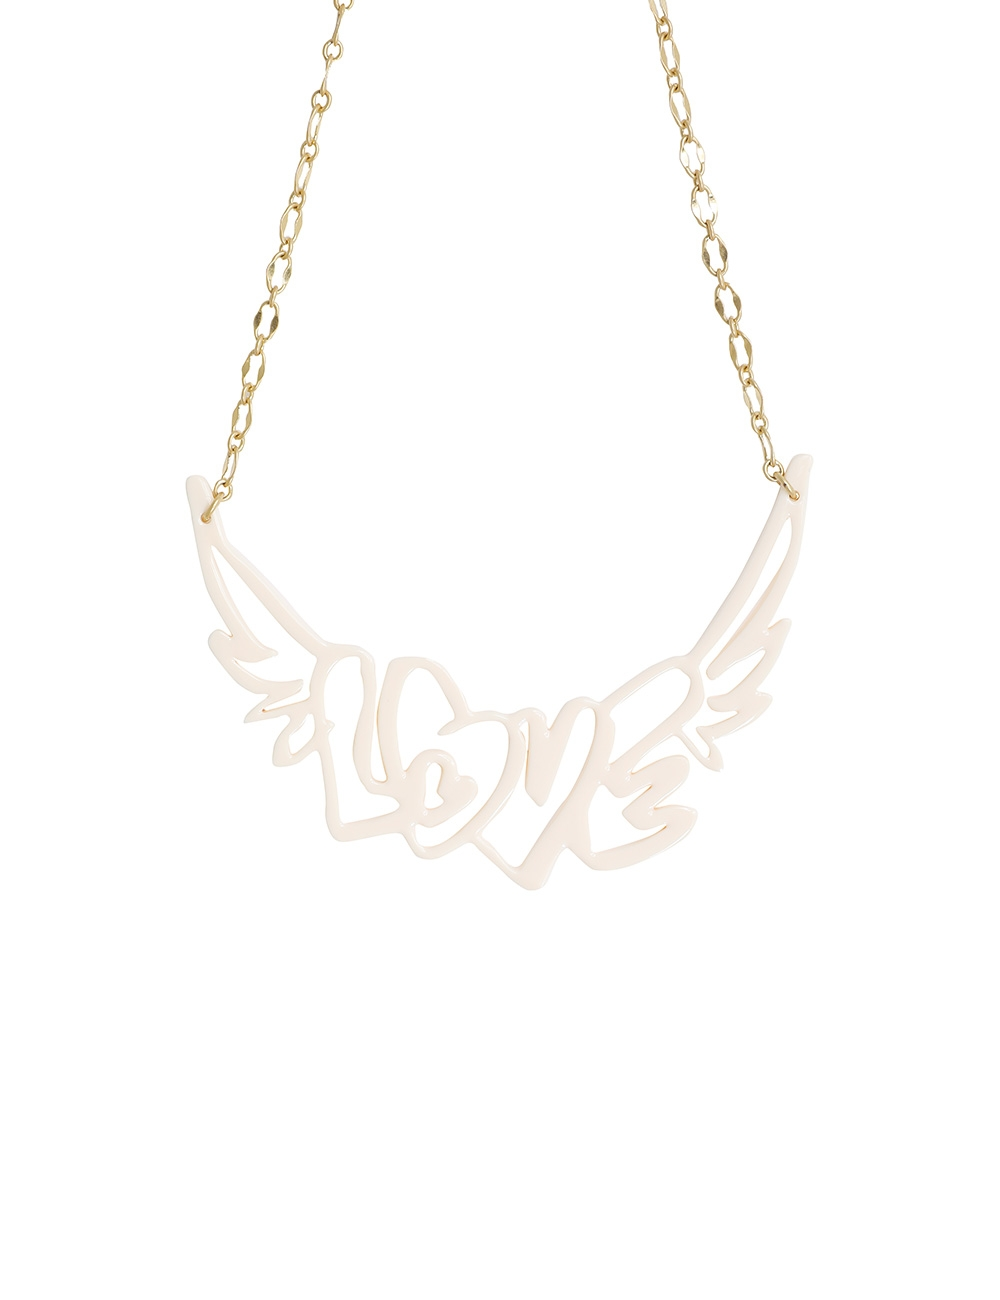 The Lovestruck Necklace